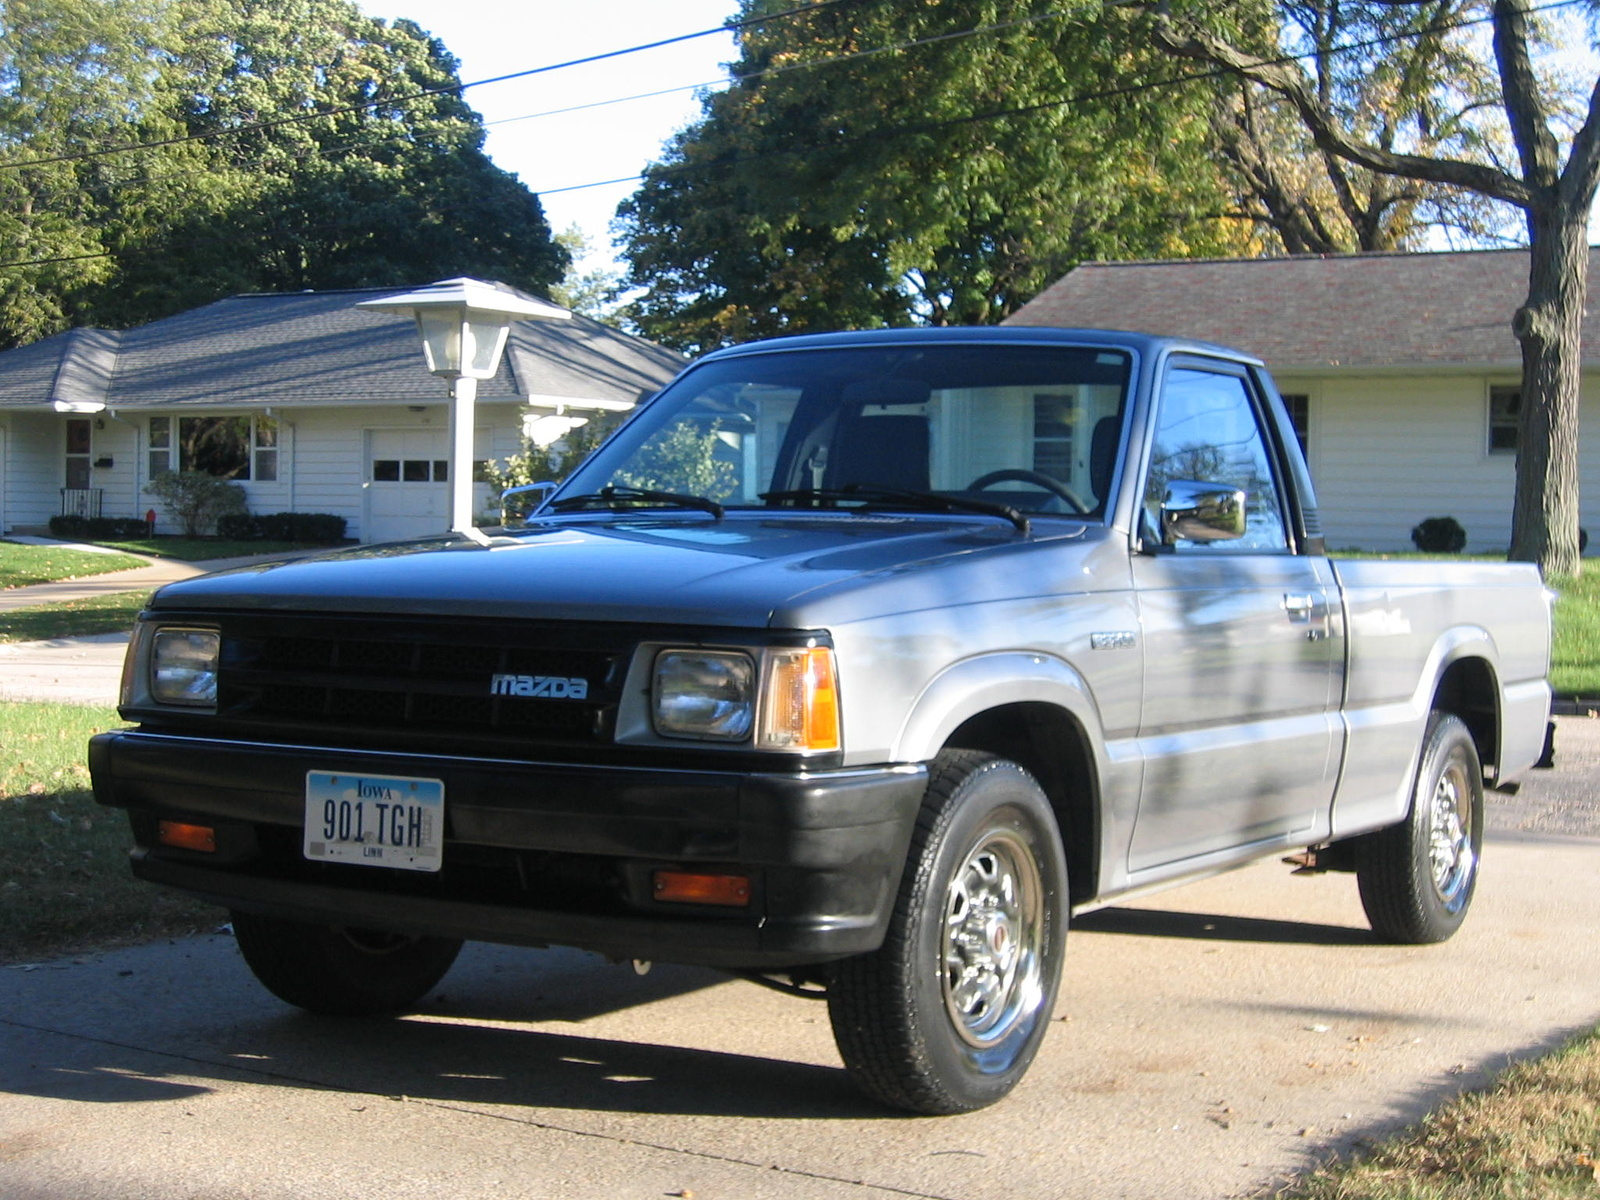 1992 Mazda B Series Pickup Information And Photos Neo Dr